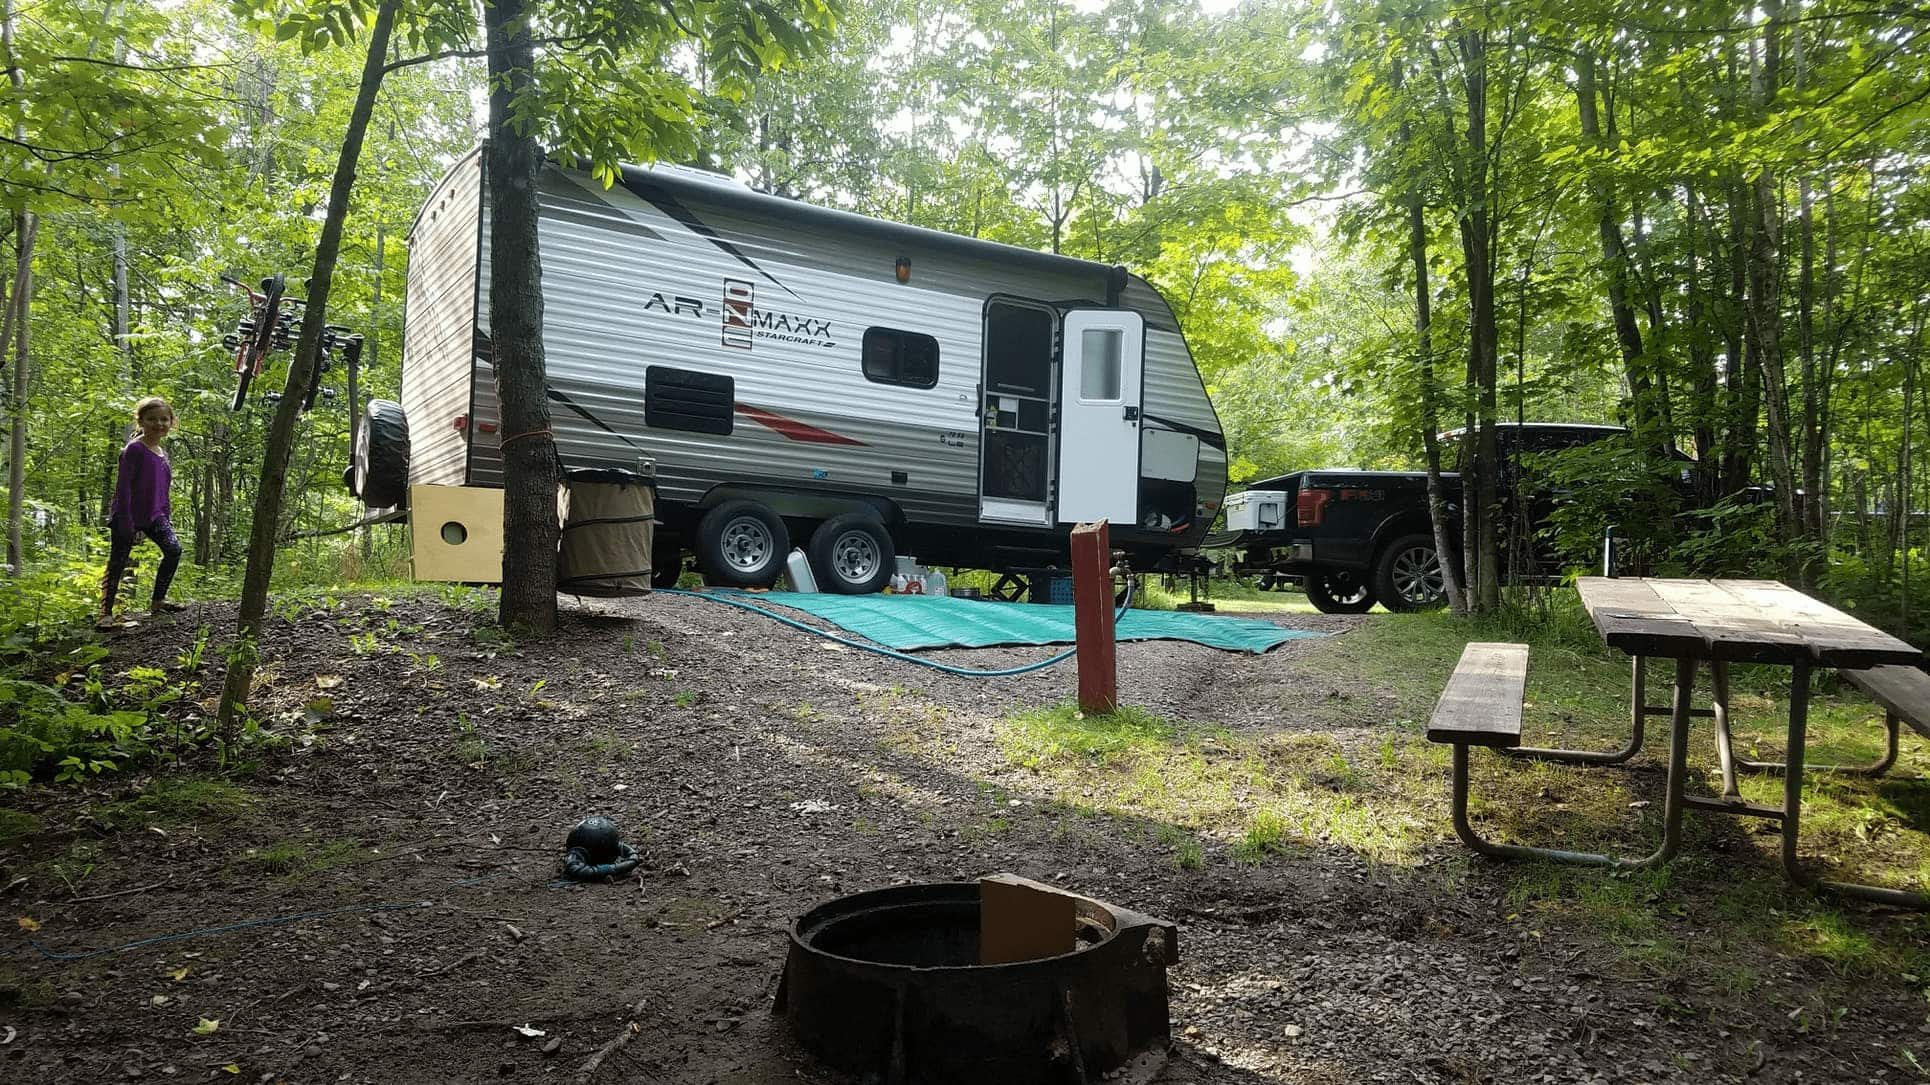 RV parked on sloped campground in the forest with a picnic table and fire pit.